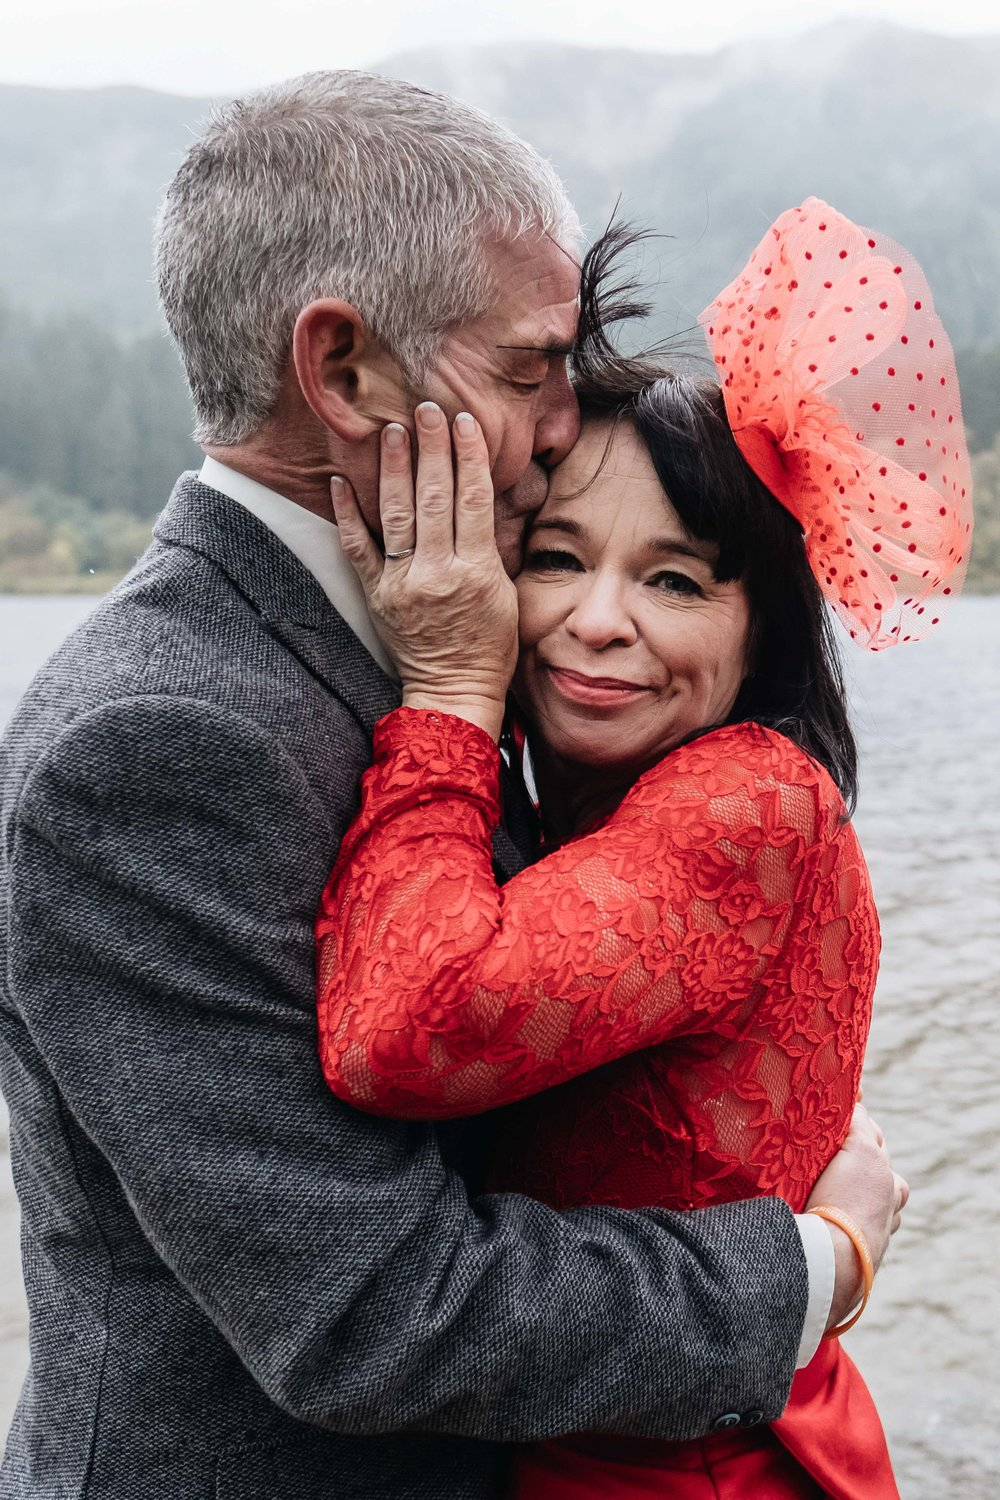 A bride wearing a red dress is hugging her husband.